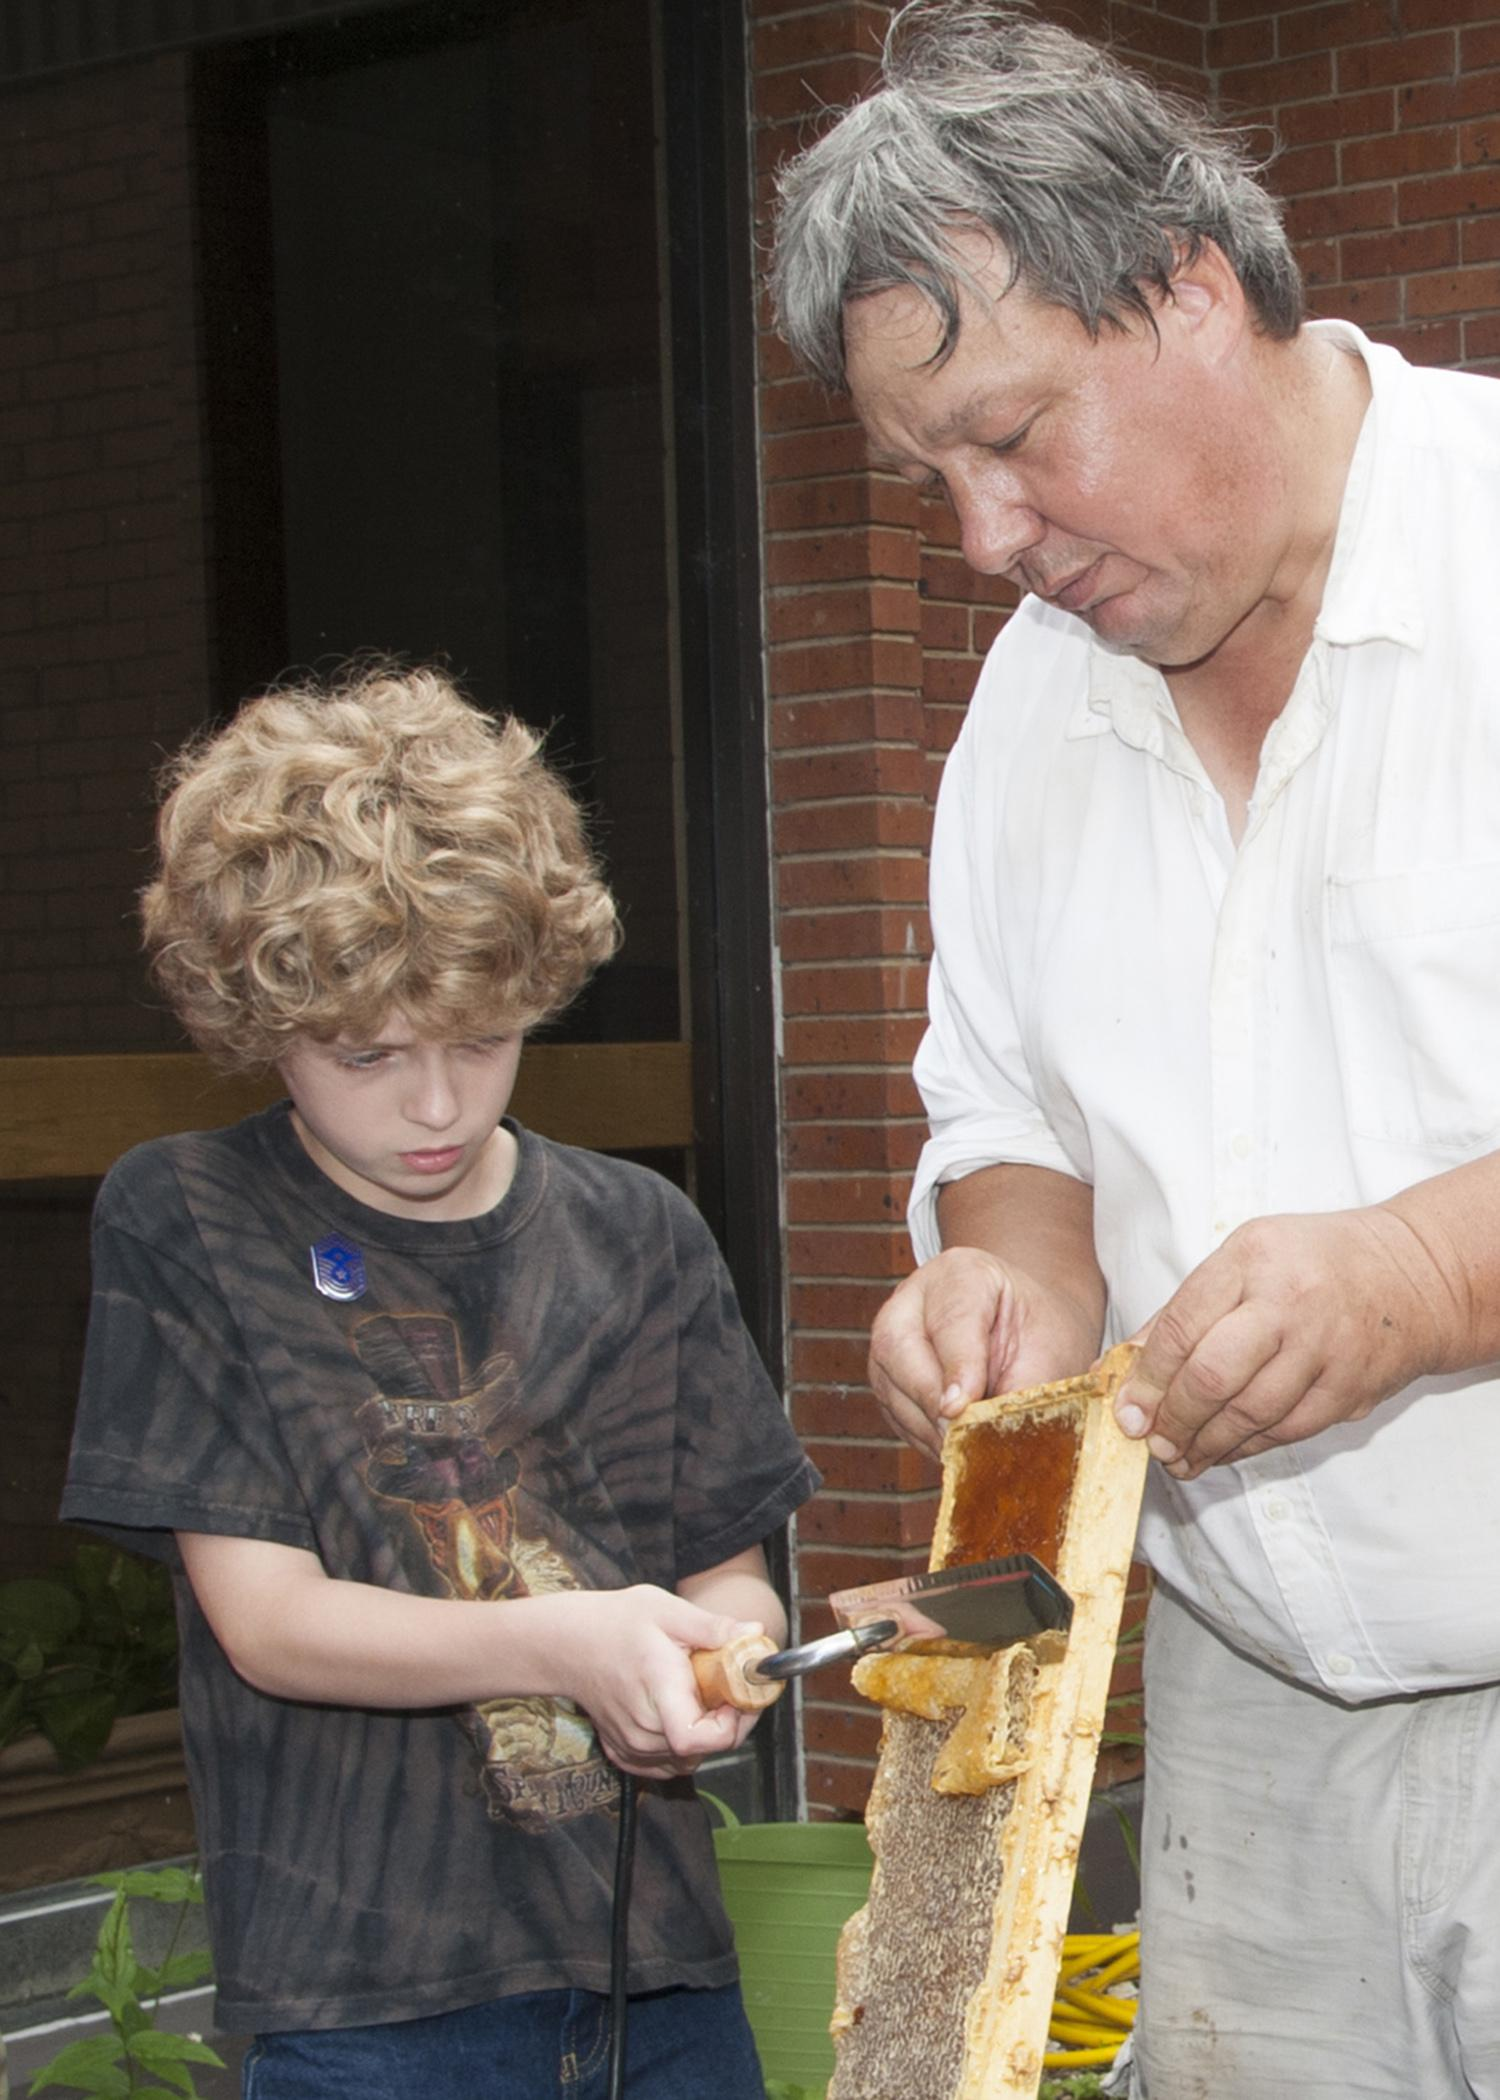 MSU Extension entomologist Jeff Harris holds a bee frame while Emmett King, 10, carefully harvests the honey. Beekeeping was one topic covered in Mississippi State University's 20th annual Bug and Plant Camp. (Photo by MSU Ag Communications/Kat Lawrence)